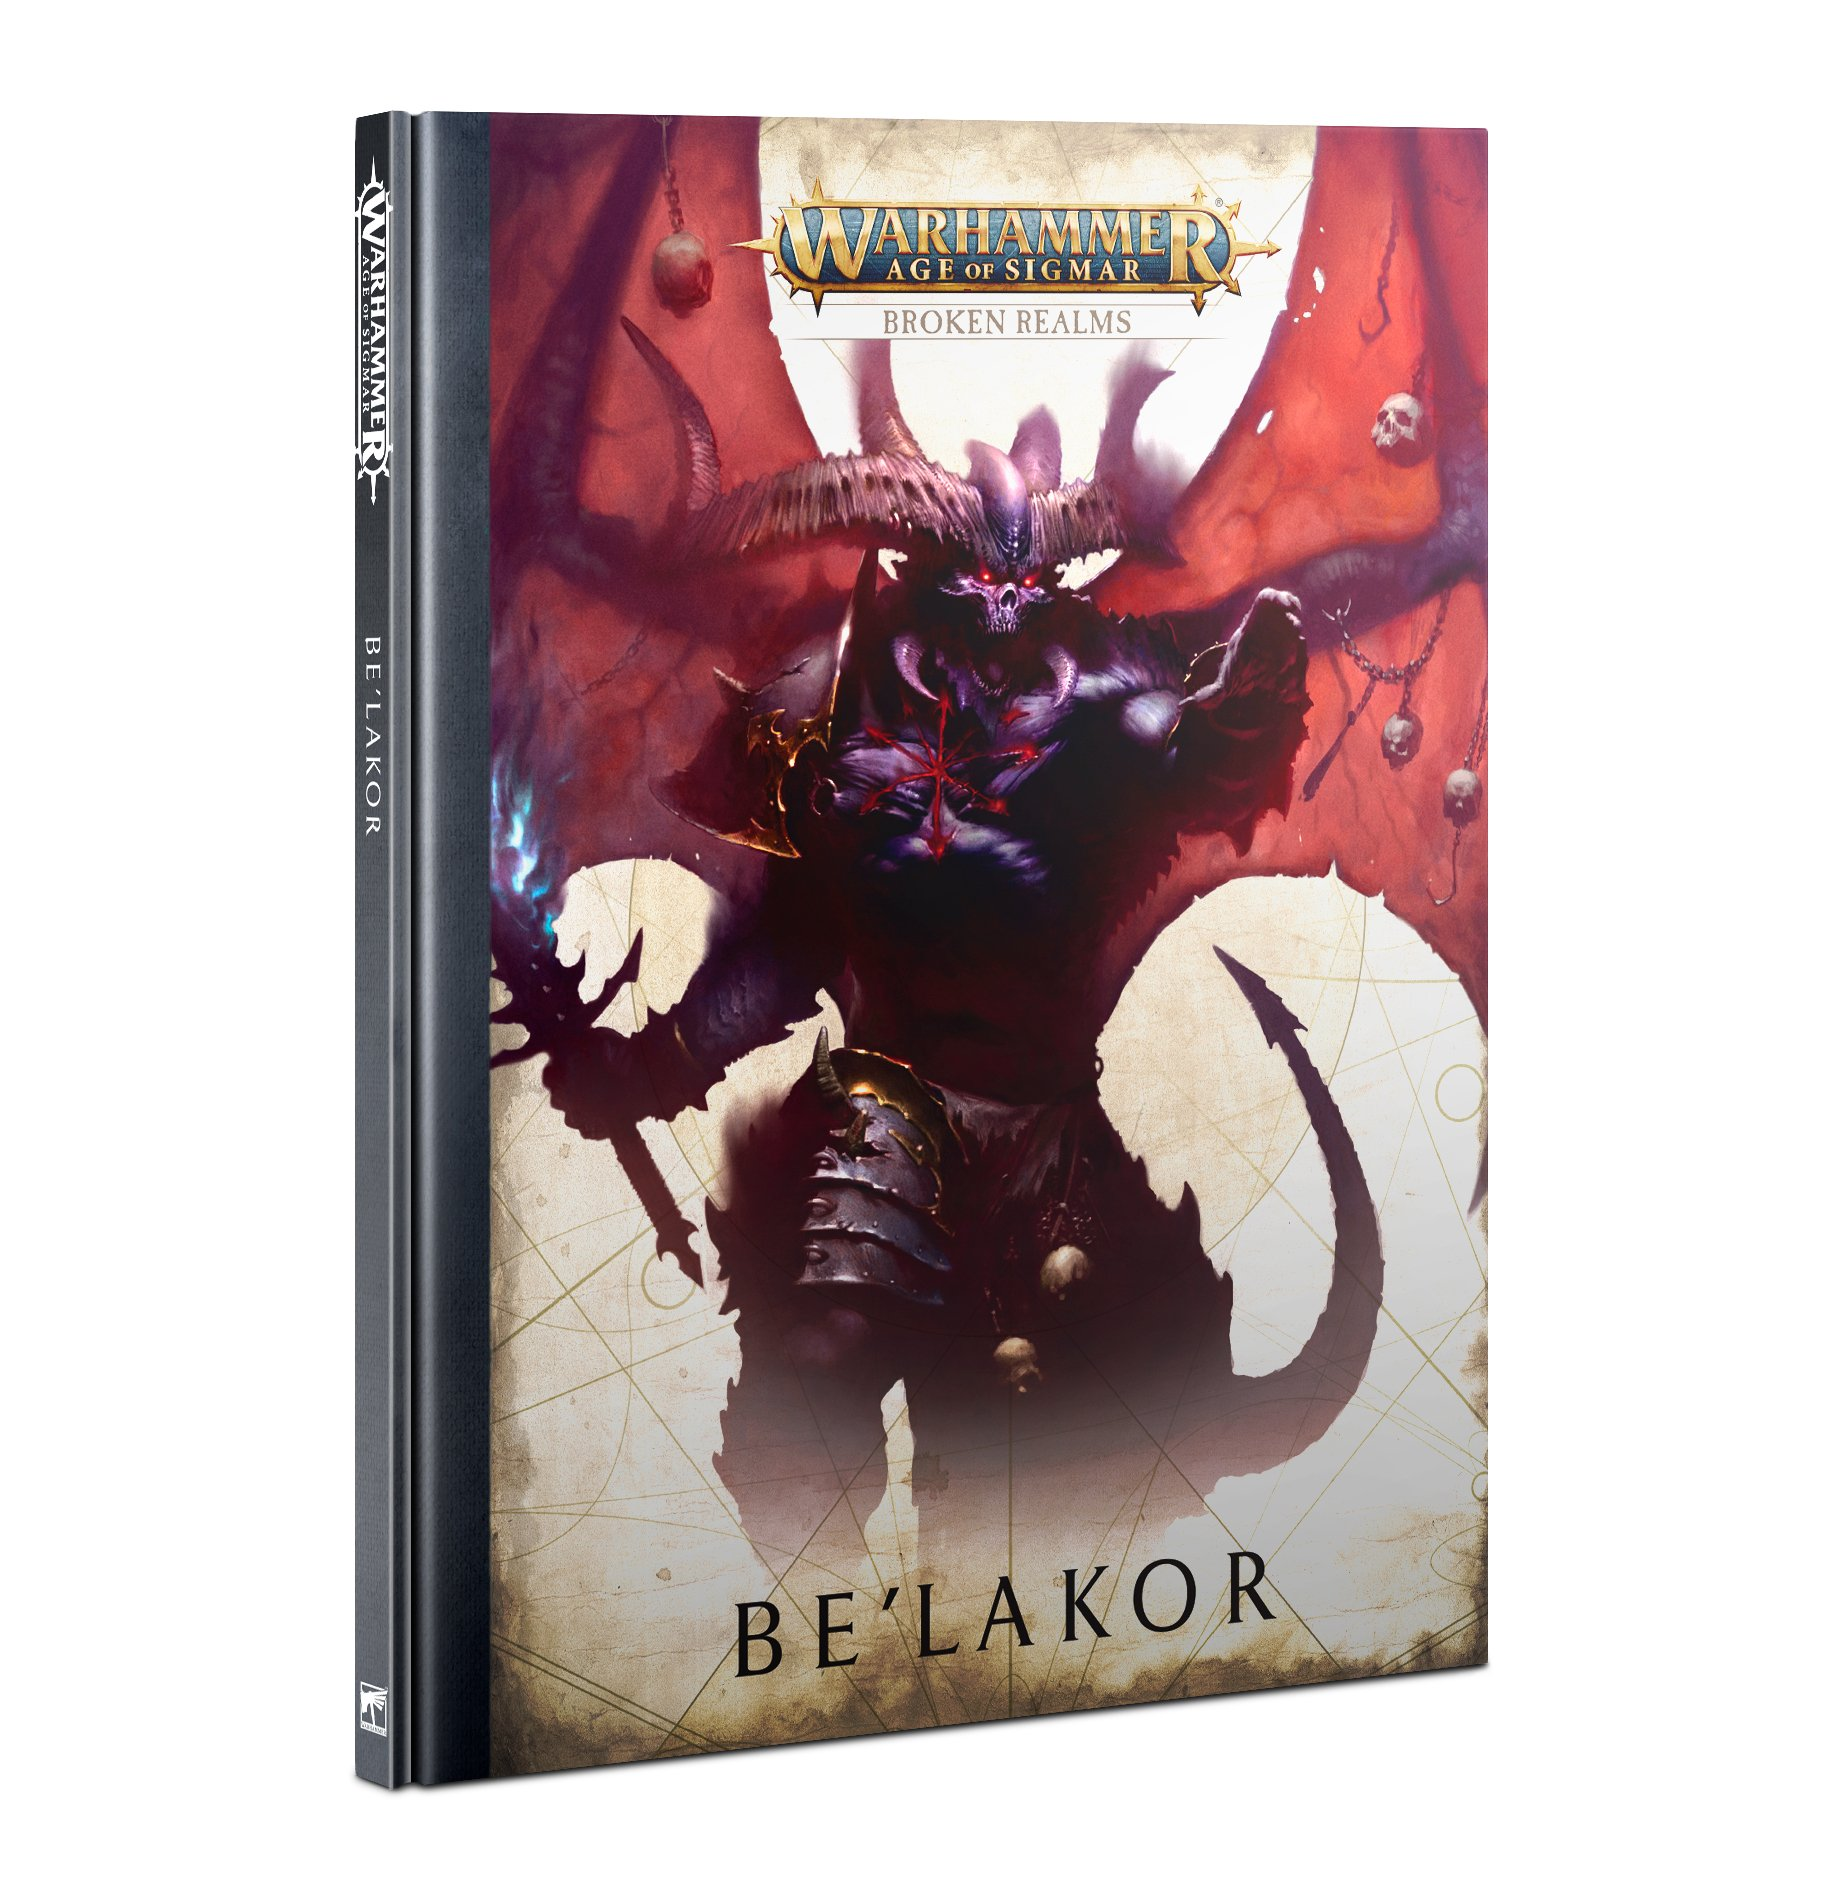 Warhammer Age of Sigmar: Broken Realms - Belakor (HB) (April 24th)